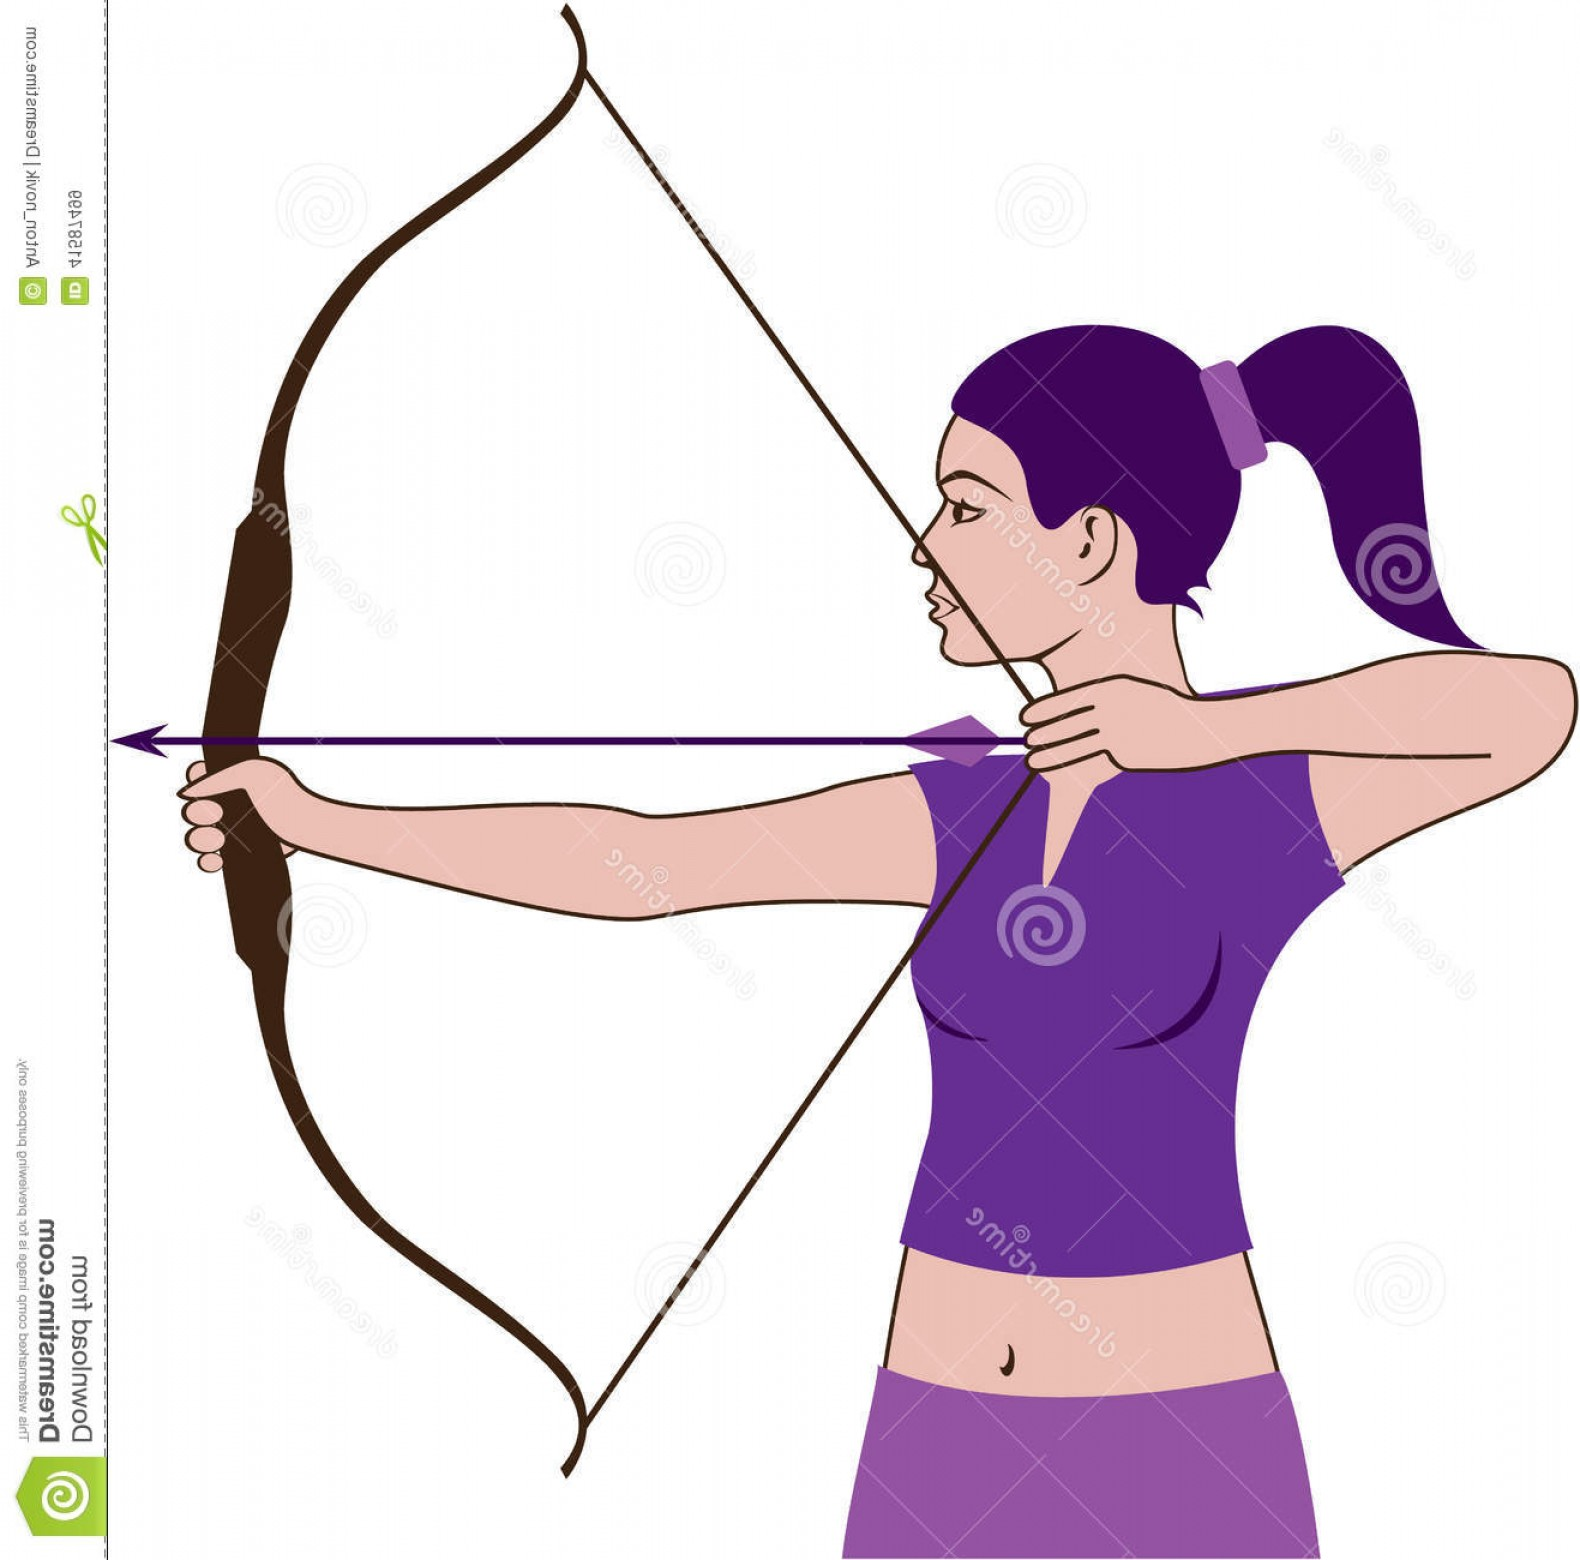 Woman silhouette at getdrawings. Archer clipart hunter